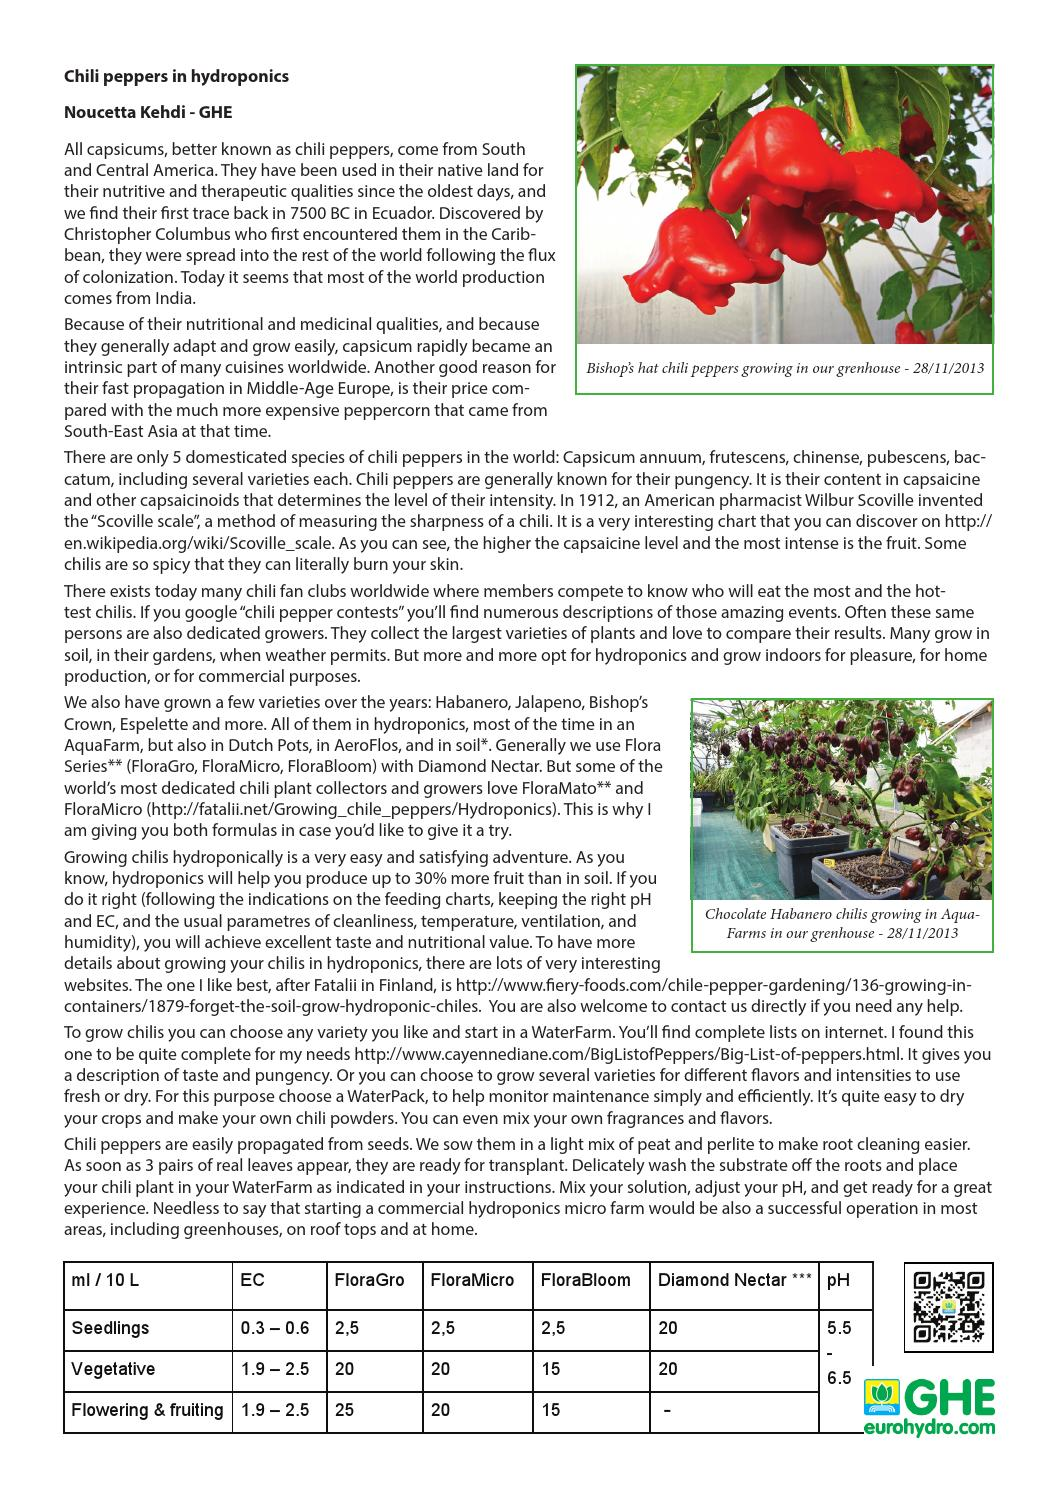 Hydro and chili peppers gb by General Hydroponics Europe - issuu